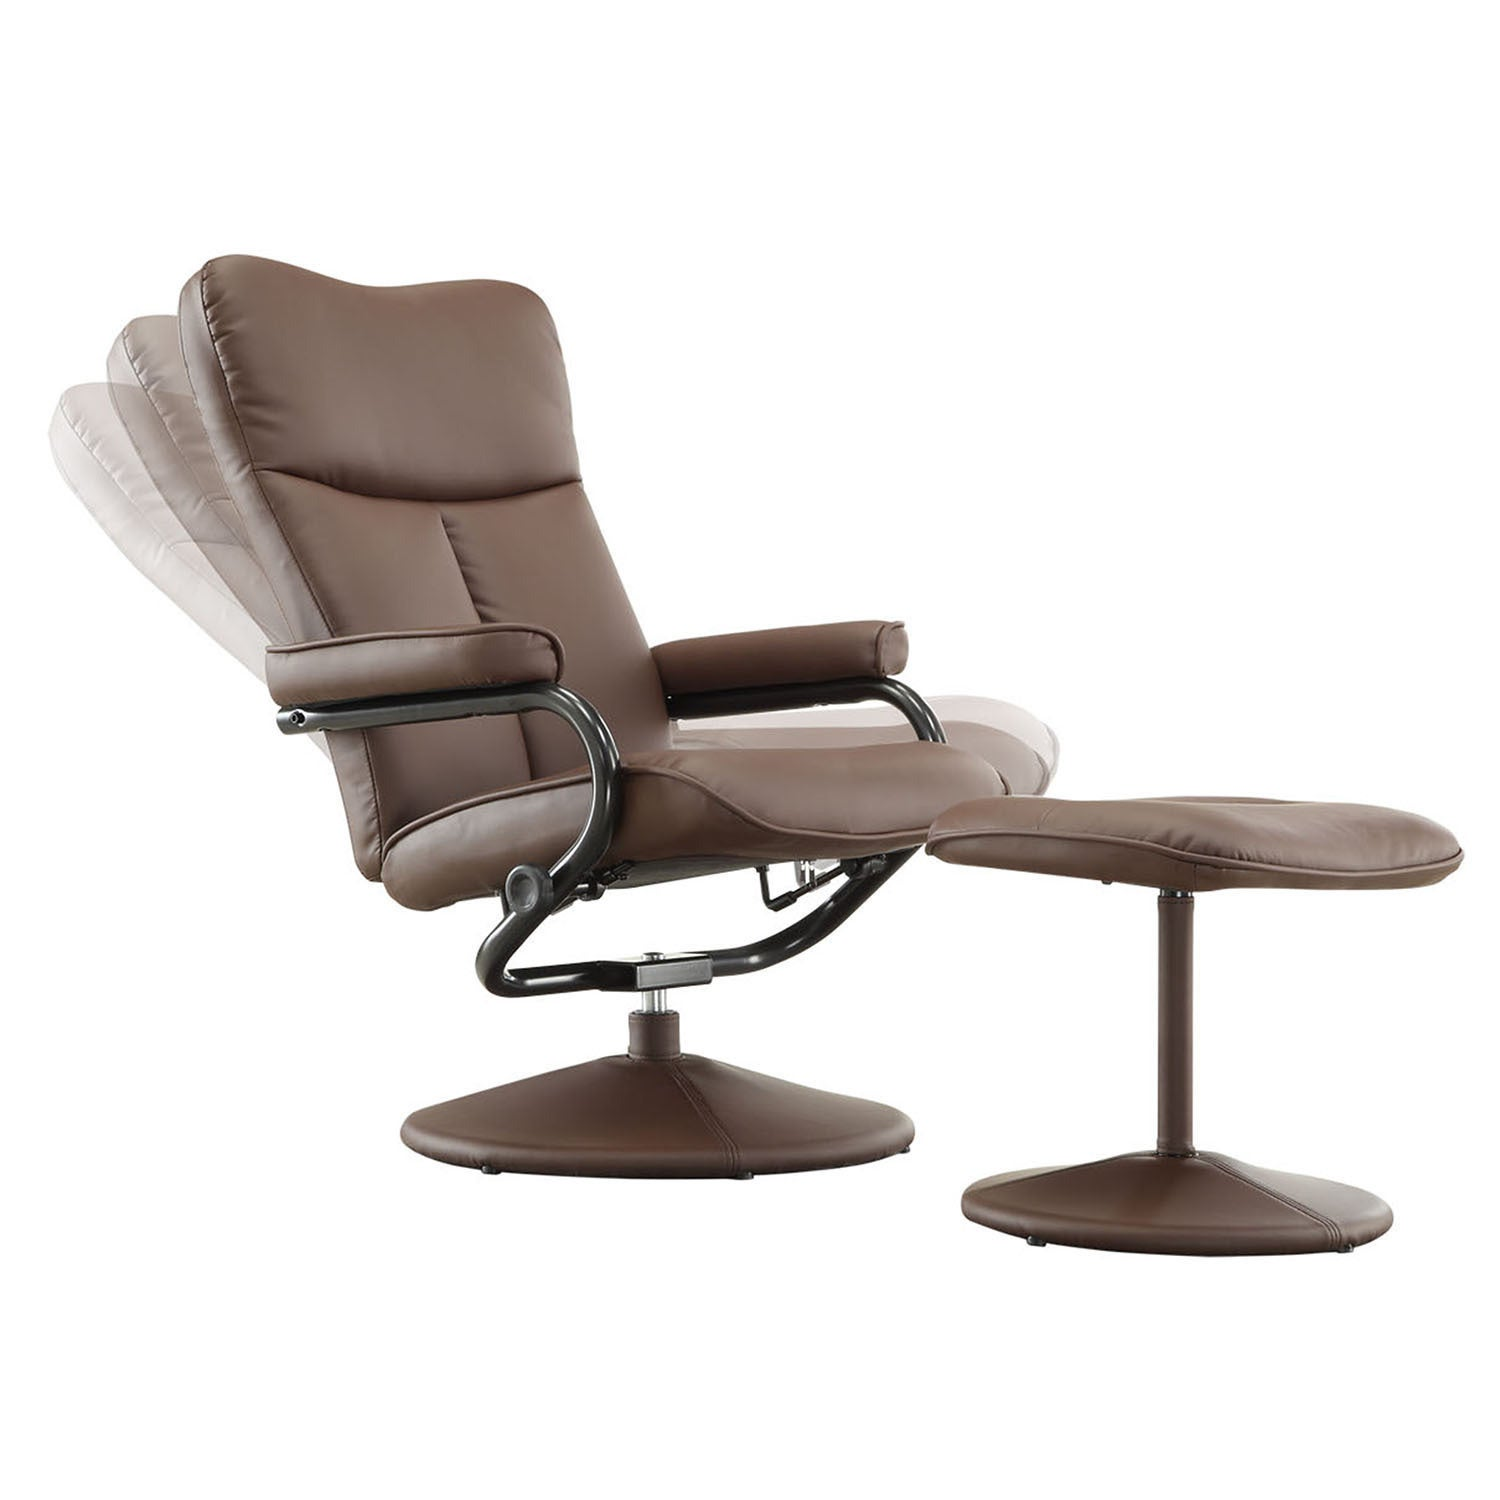 Olivia Bonded Leather Swivel Recliner Chair With Ottoman INSPIRE Q Modern    Free Shipping Today   Overstock.com   16605804